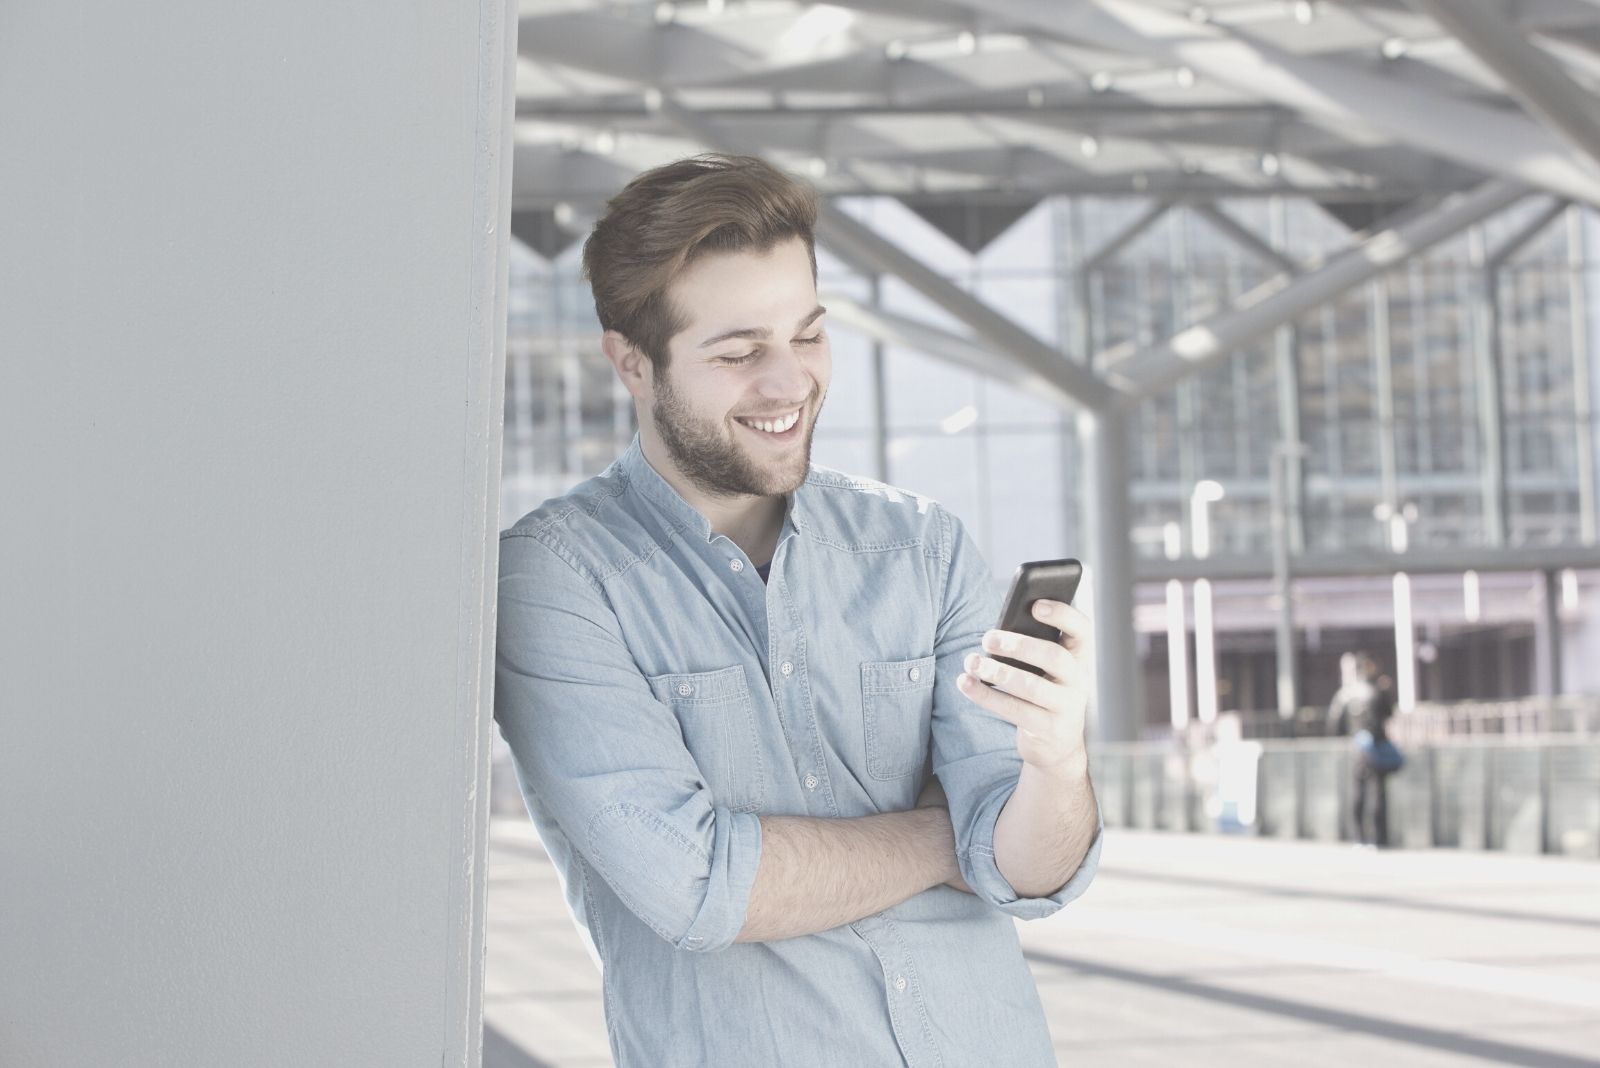 smiling man reading text messages from his phone outside a store